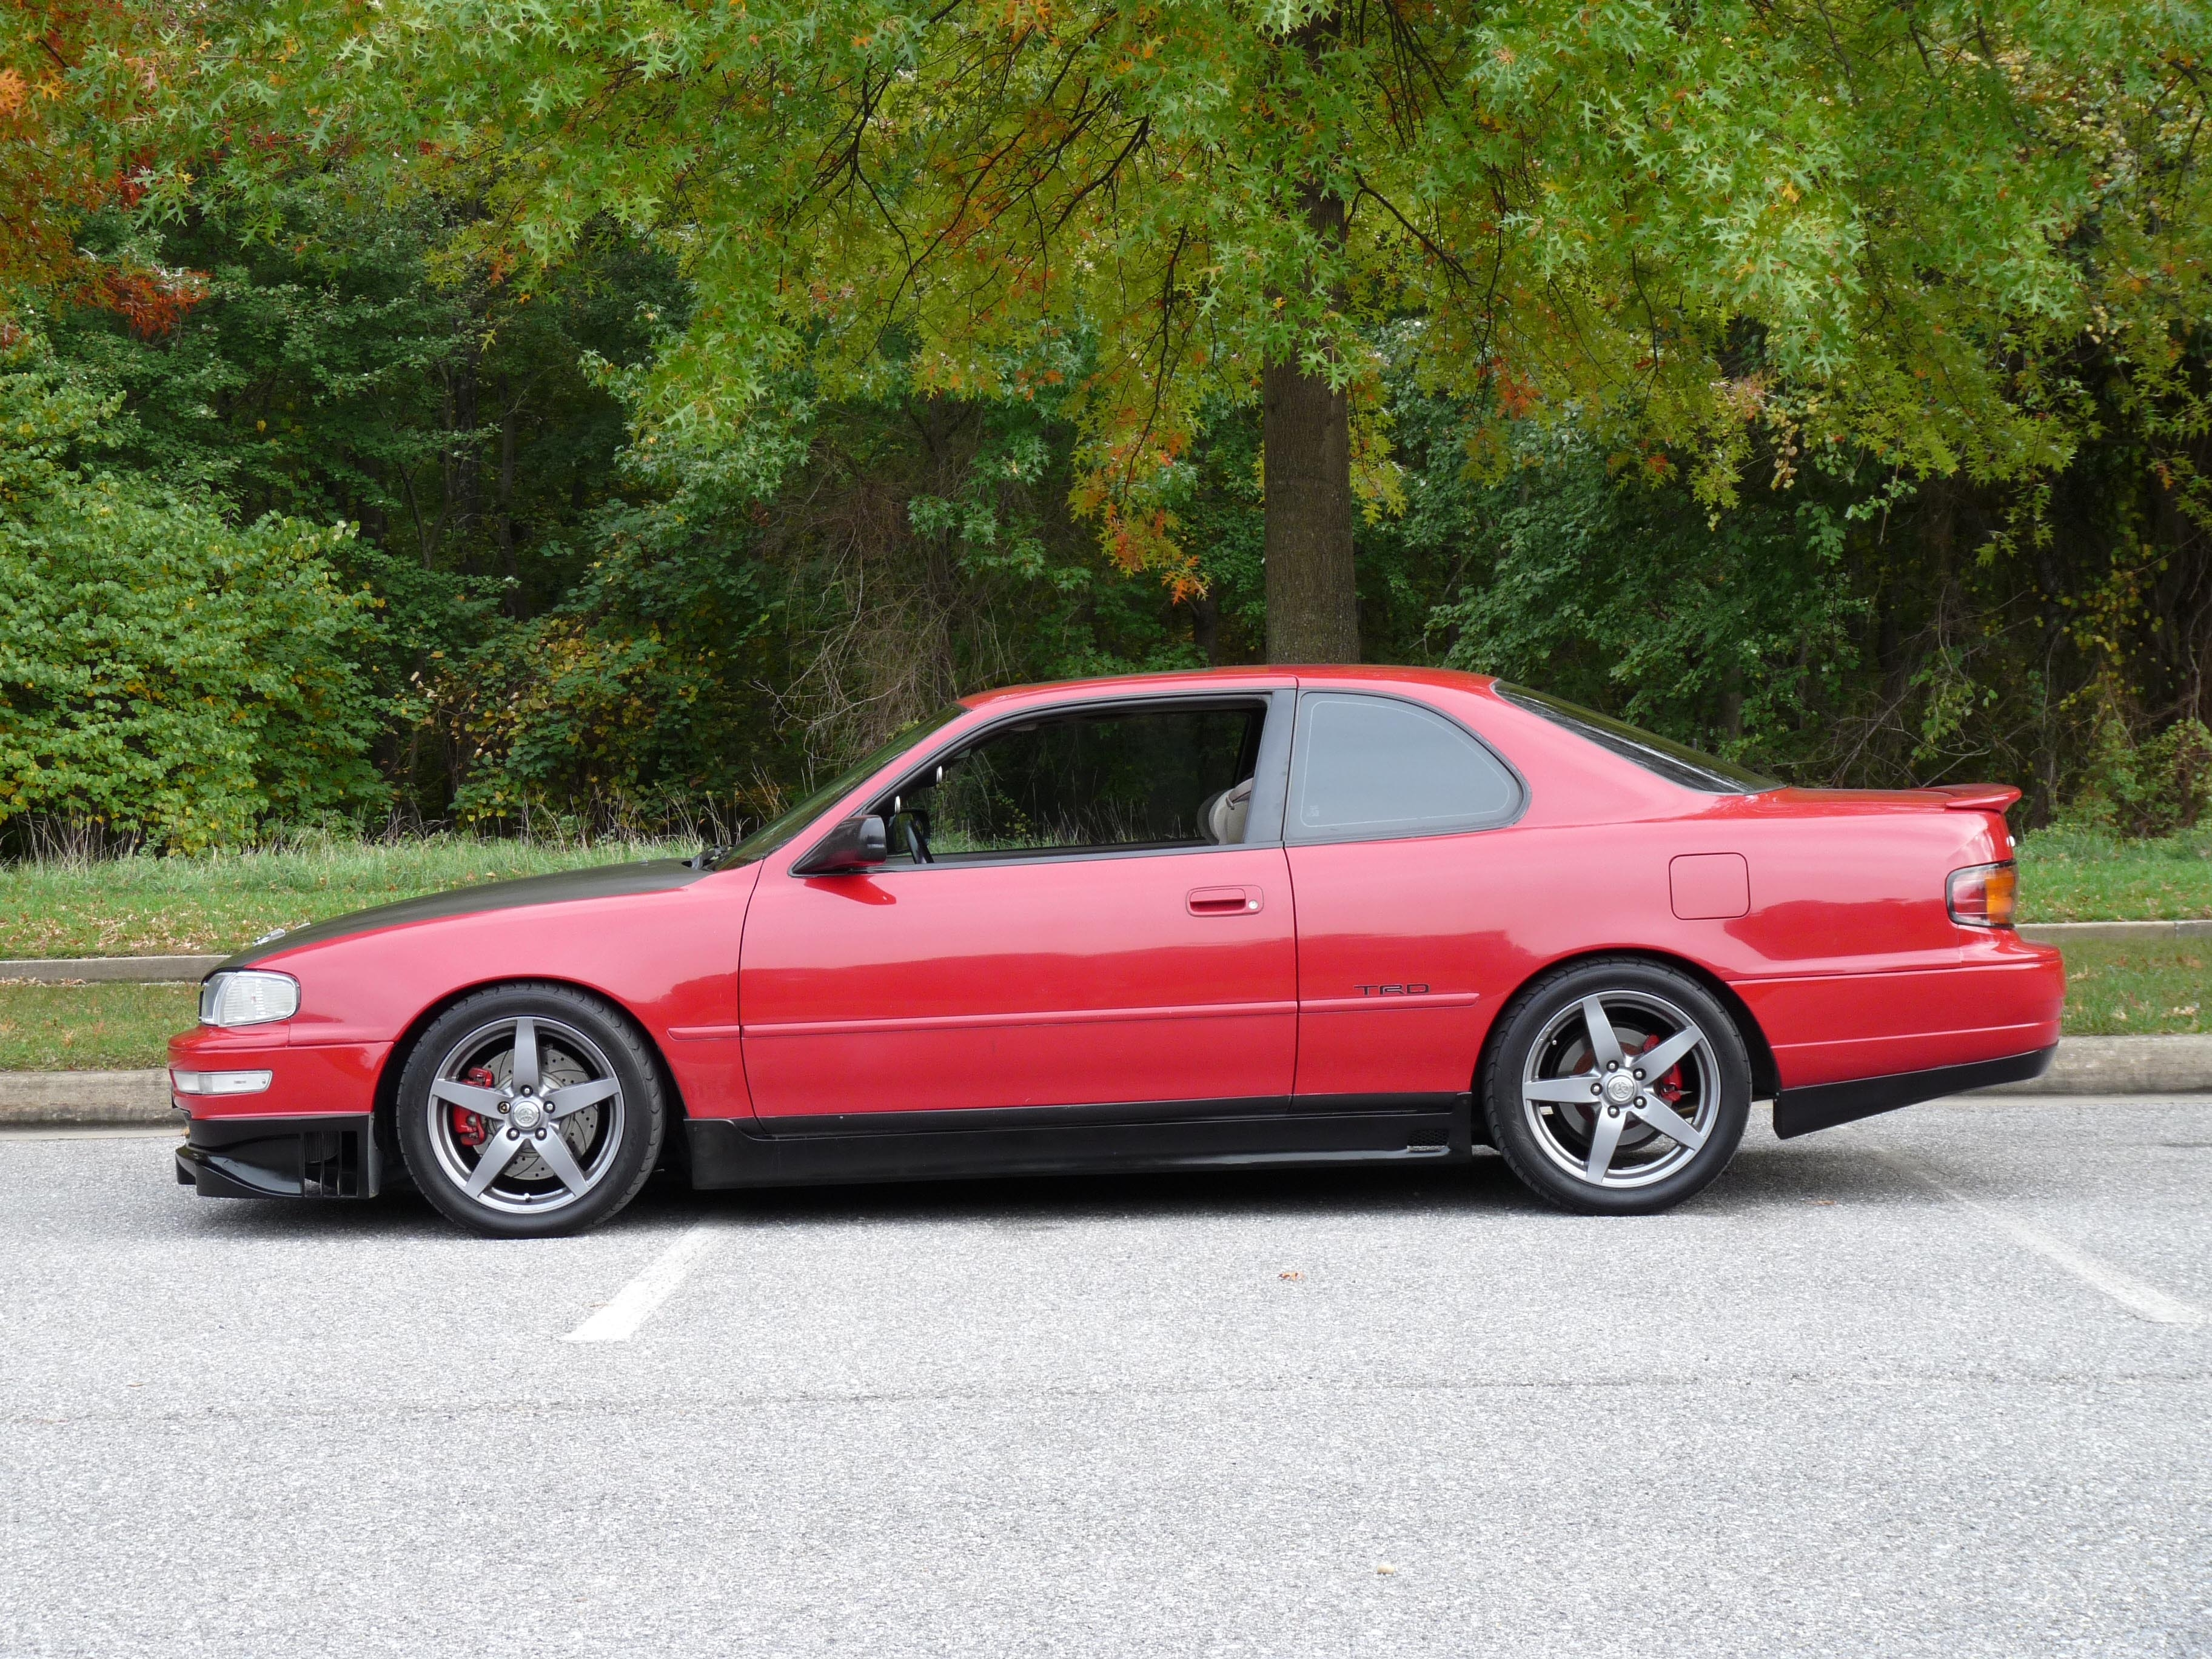 bigbirdSCed 1994 Toyota Camry Specs Photos Modification Info at